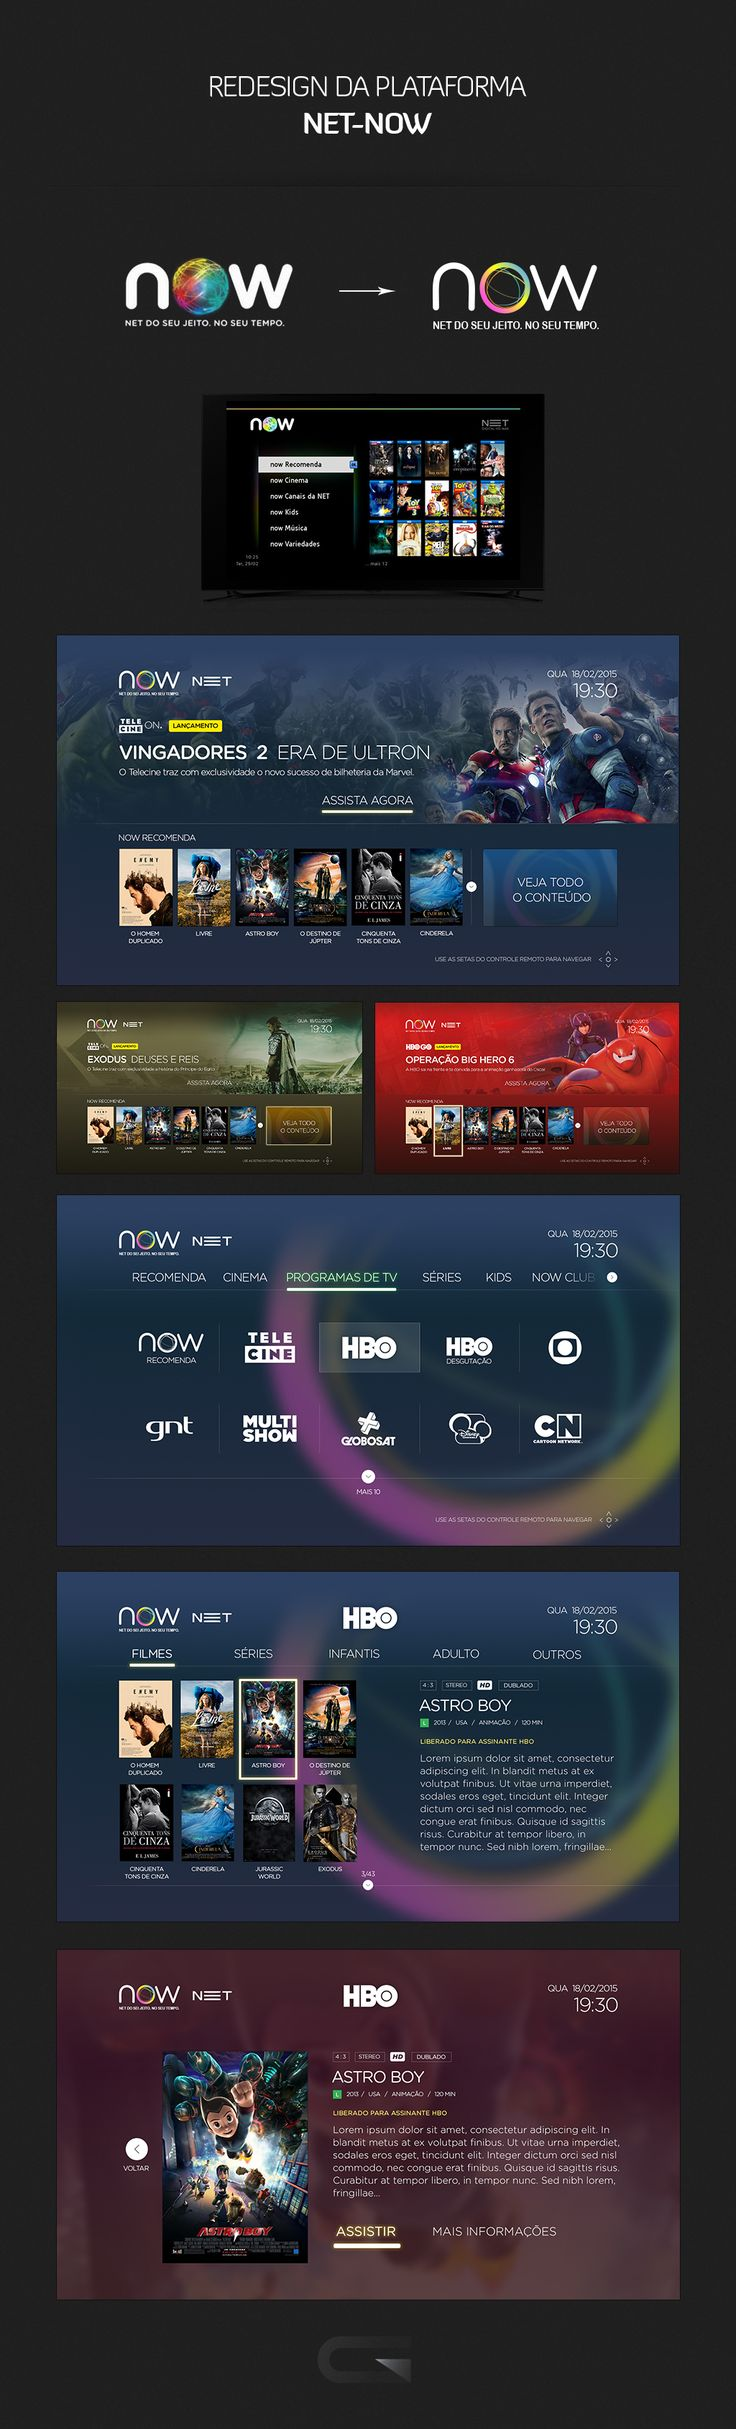 Redesign da plataforma para serviço de TV a cabo da NET TV -NOW------------------------------------- Redesign for cable TV service of NET TV - NOW